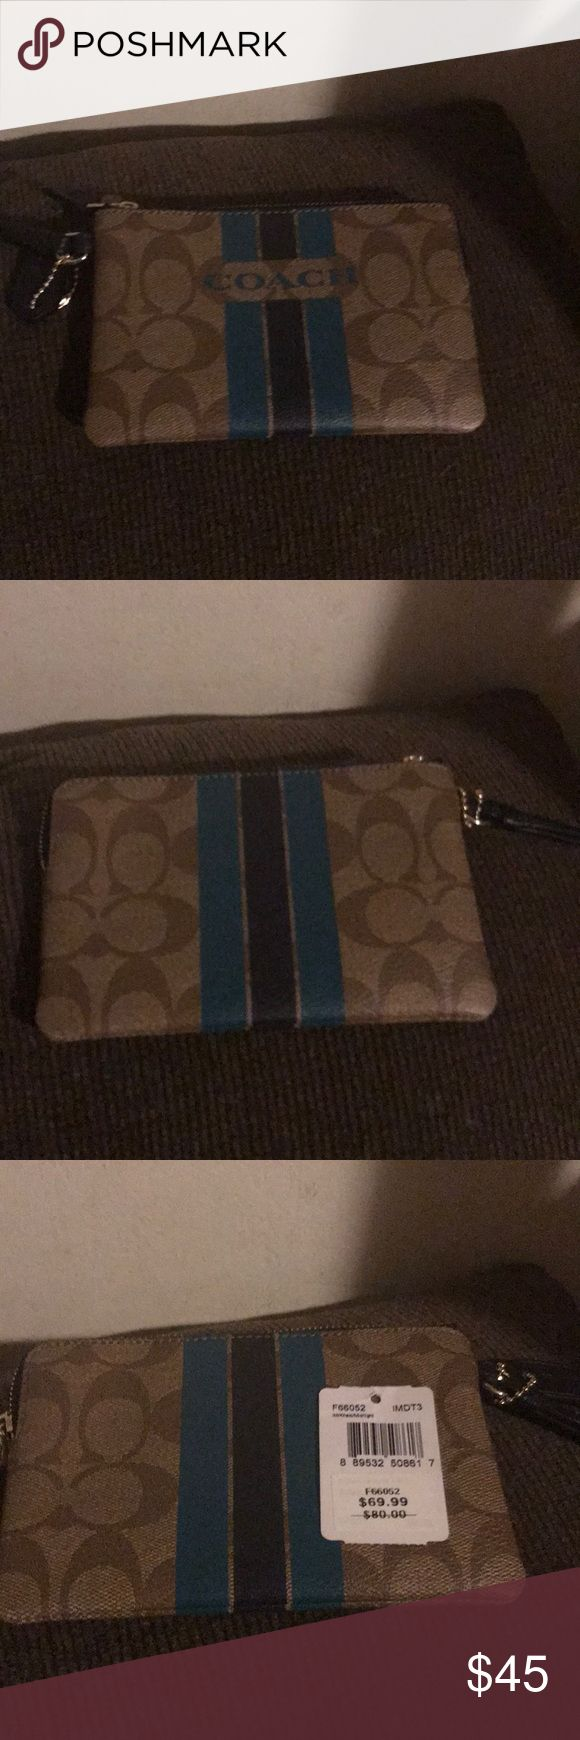 Coach wristlet Brand new with tags Coach wristlet Coach Bags Clutches & Wristlets